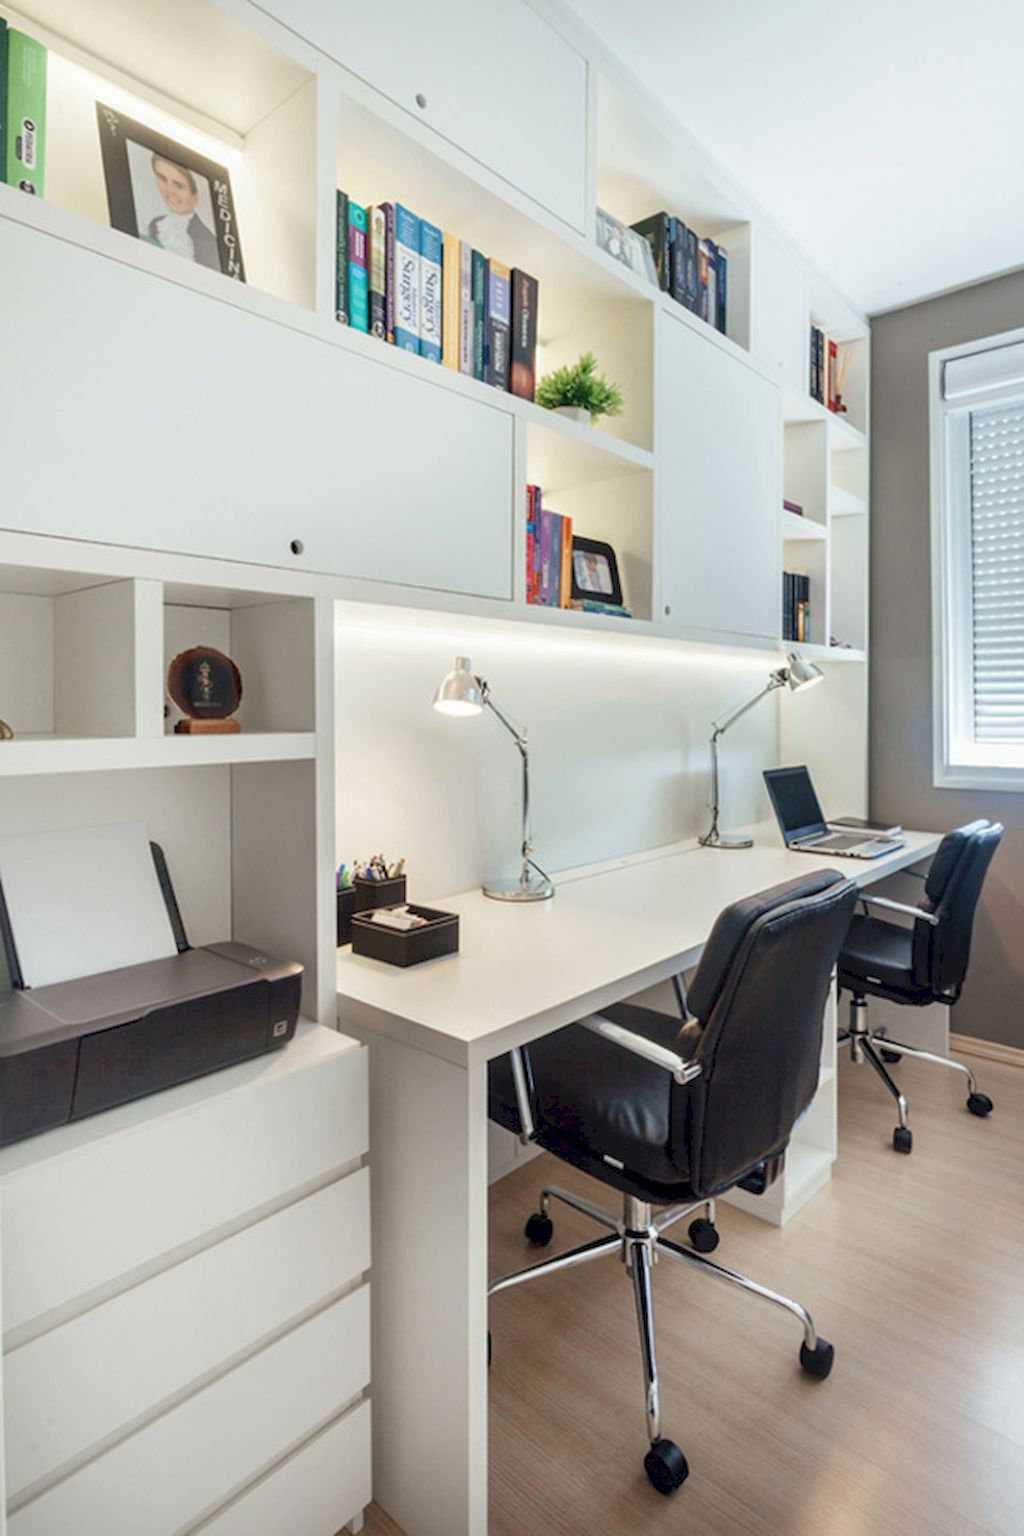 55 Modern Workspace Design Ideas Small Spaces 36 In 2020 Home